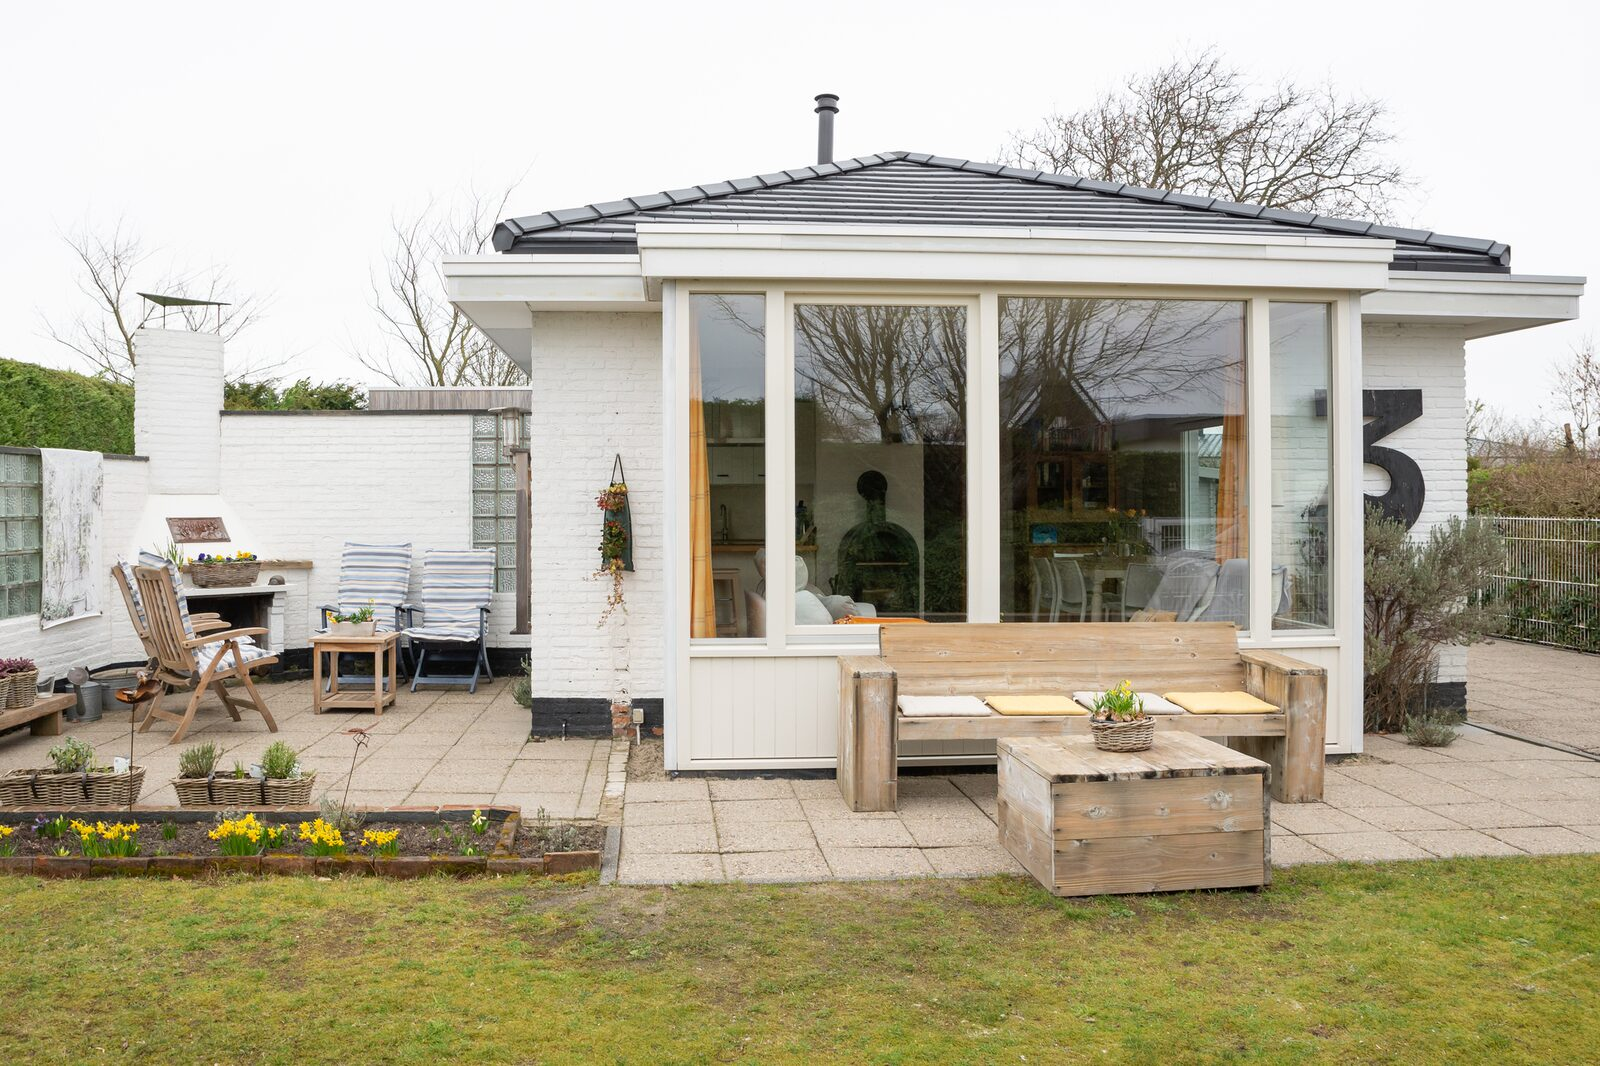 Holidayhouse - Horizon 3 | Renesse